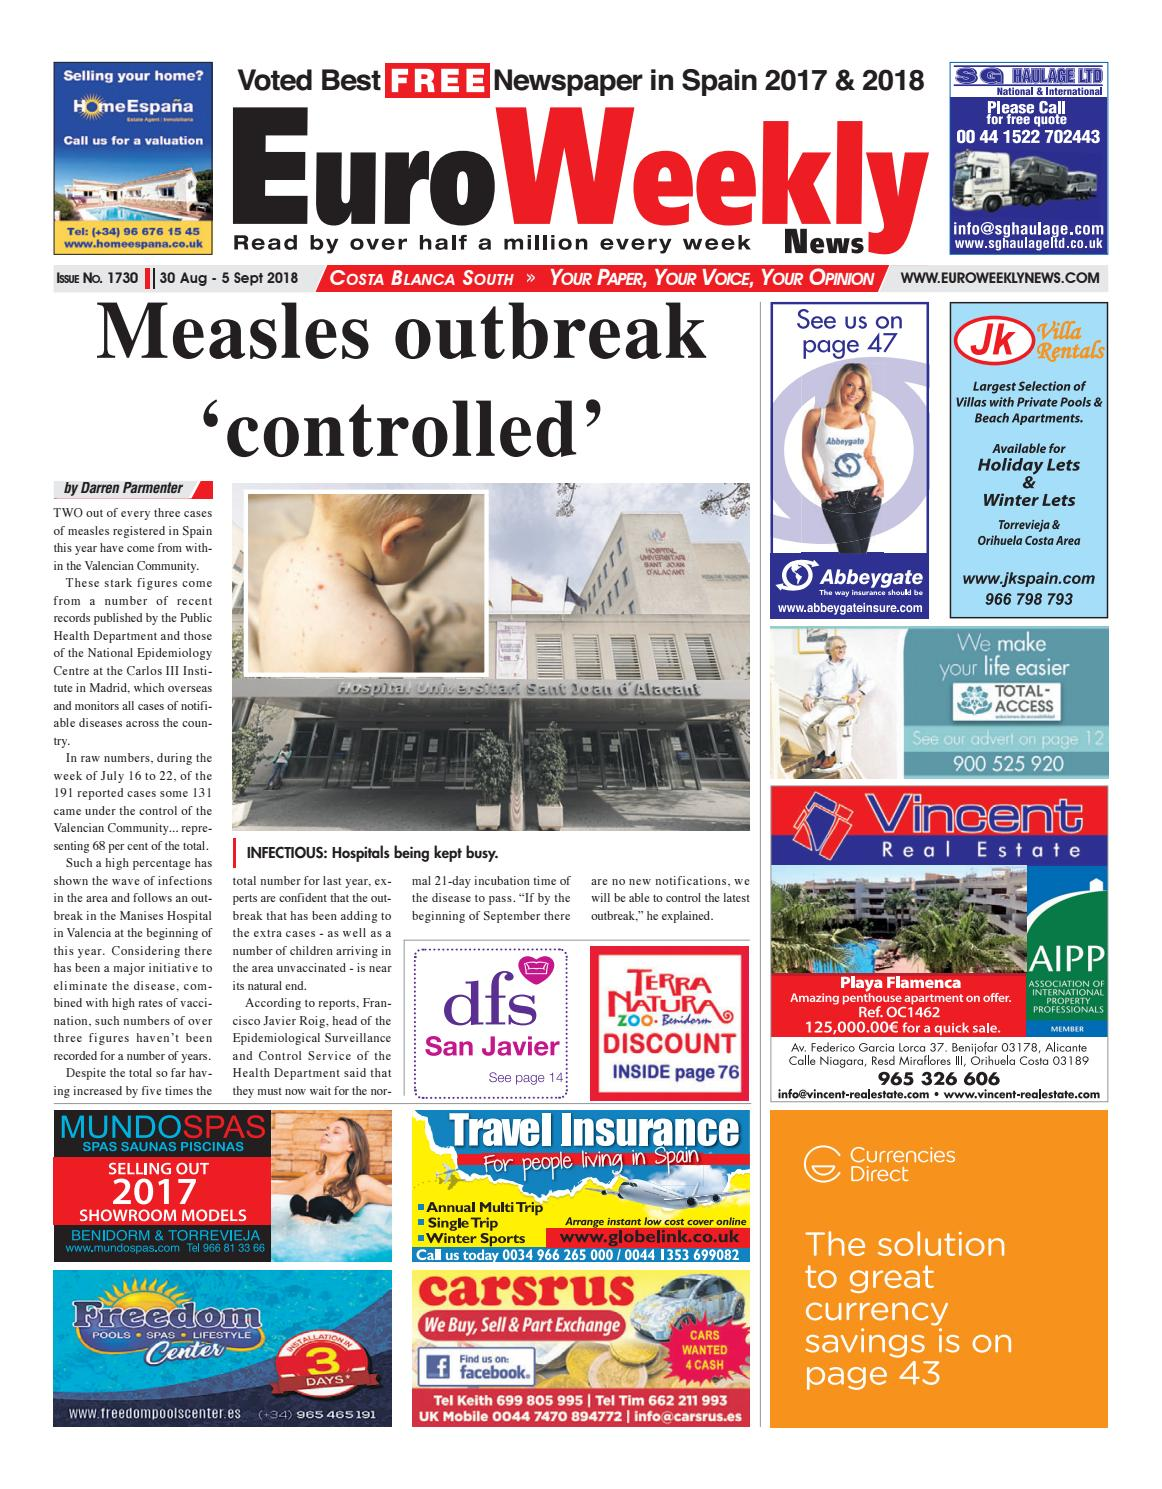 Euro Weekly News - Costa Blanca South 30 August - 5